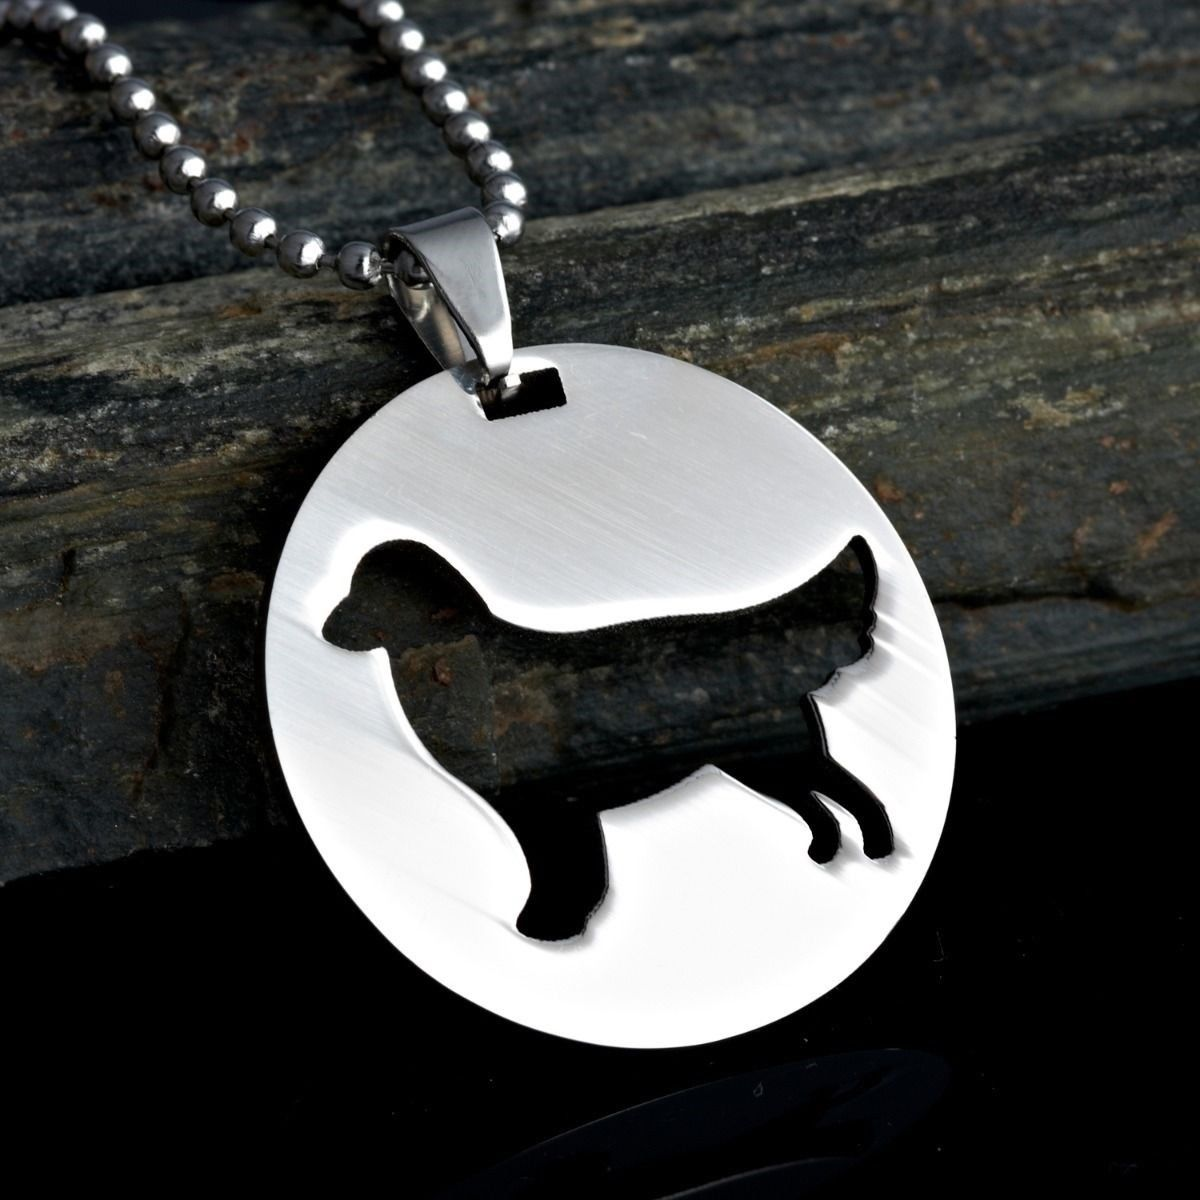 Stainless Steel Golden Retriever Round Shape Pet Dog ID Tag Collar Charm Pendant